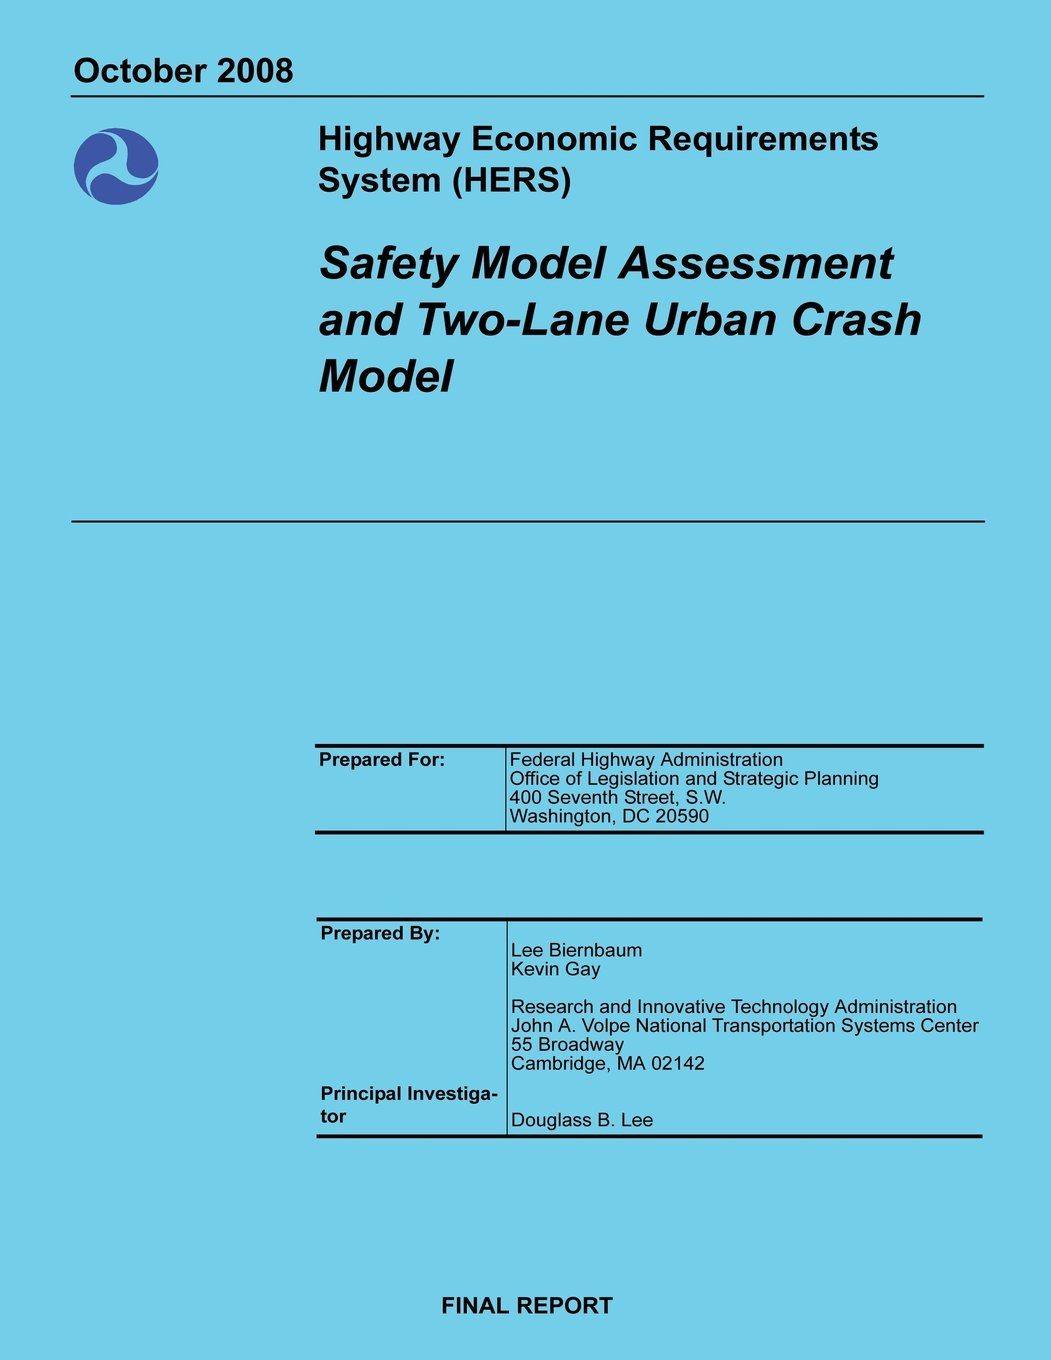 Highway Economic Requirements System (HERS) Safety Model Assessment and Two-Lane Urban Crash Model PDF